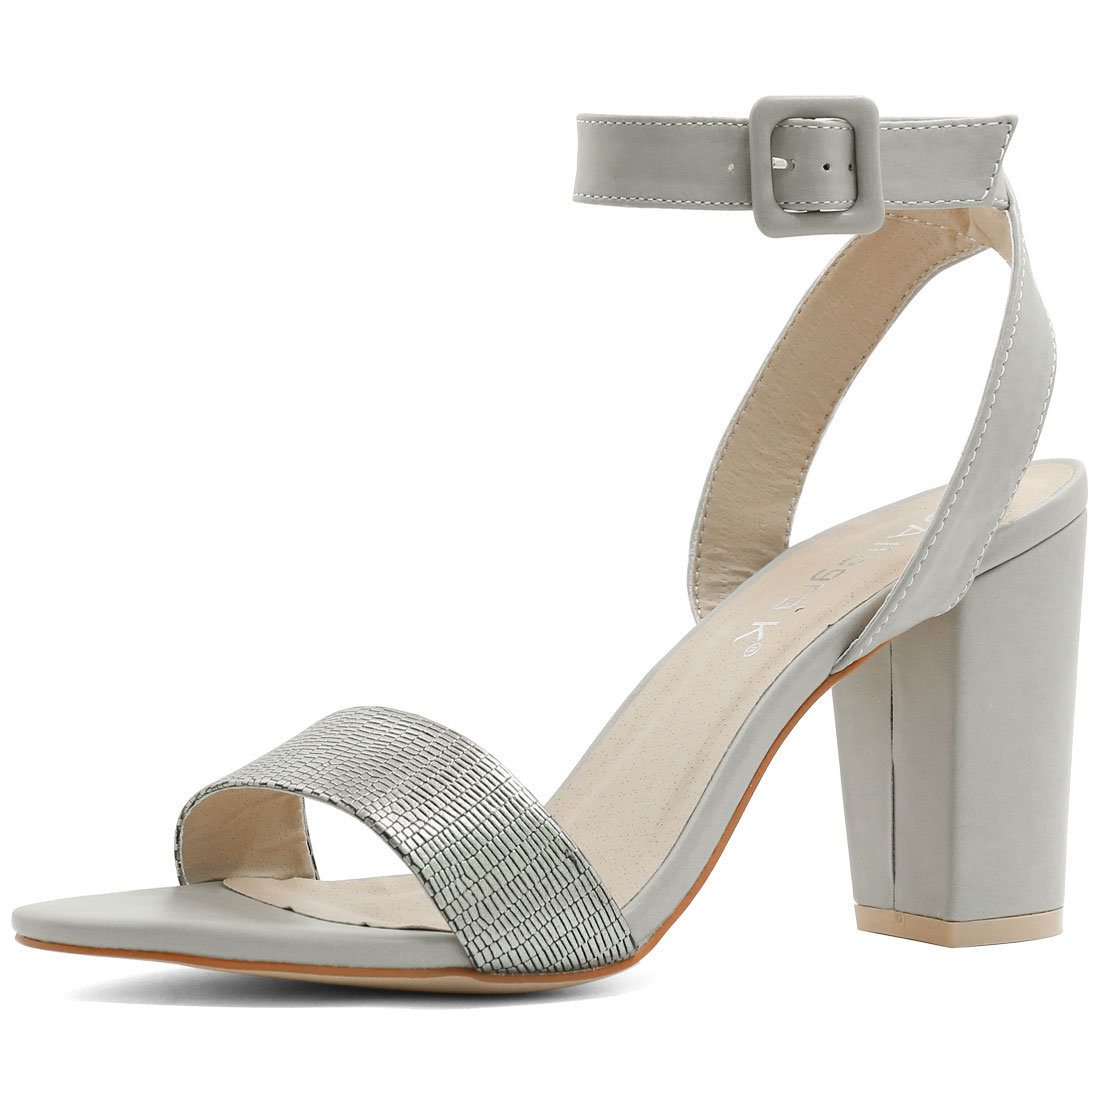 Woman Textured Vamp Chunky Heel Ankle Strap Sandals Silver US 9